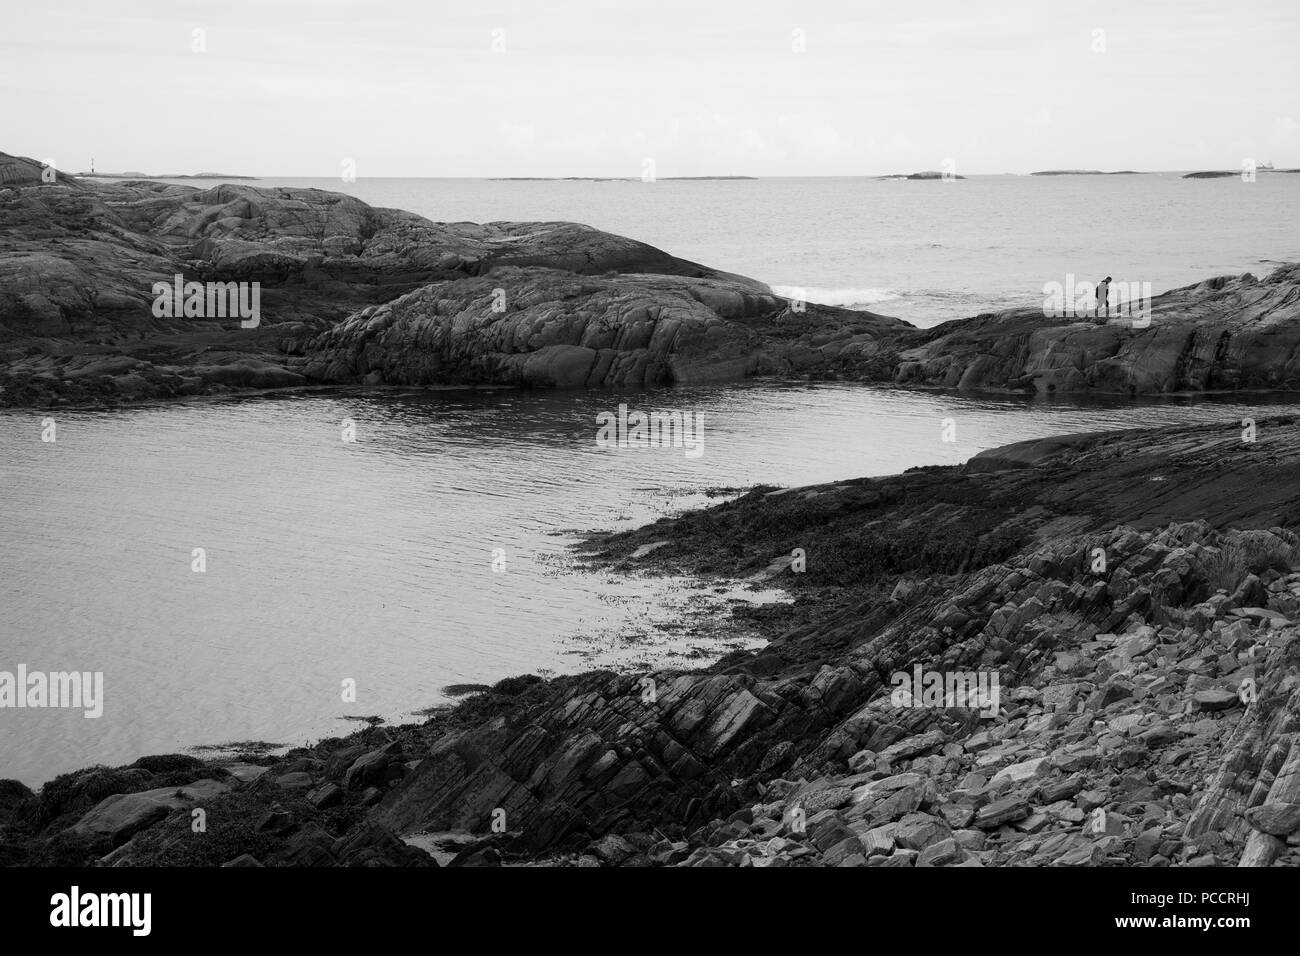 Rocks view on the coast of famous Atlantic Ocean Road -  Atlanterhavsveien , More og Romsdal county, Norway. - Stock Image